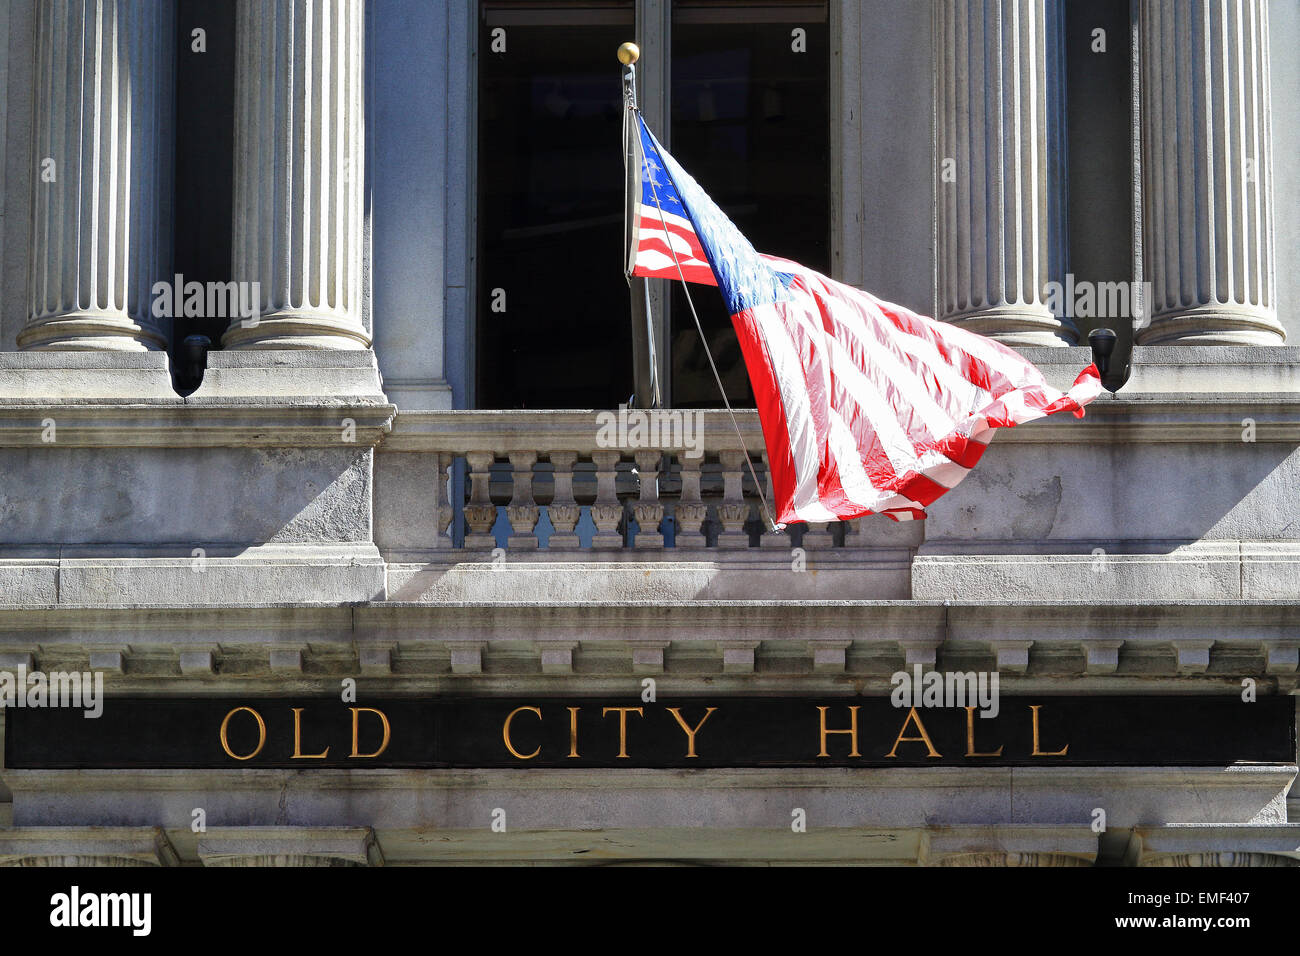 Boston Freedom Trail landmark. The Old City Hall of Boston Massachusetts flying the United States flag. - Stock Image